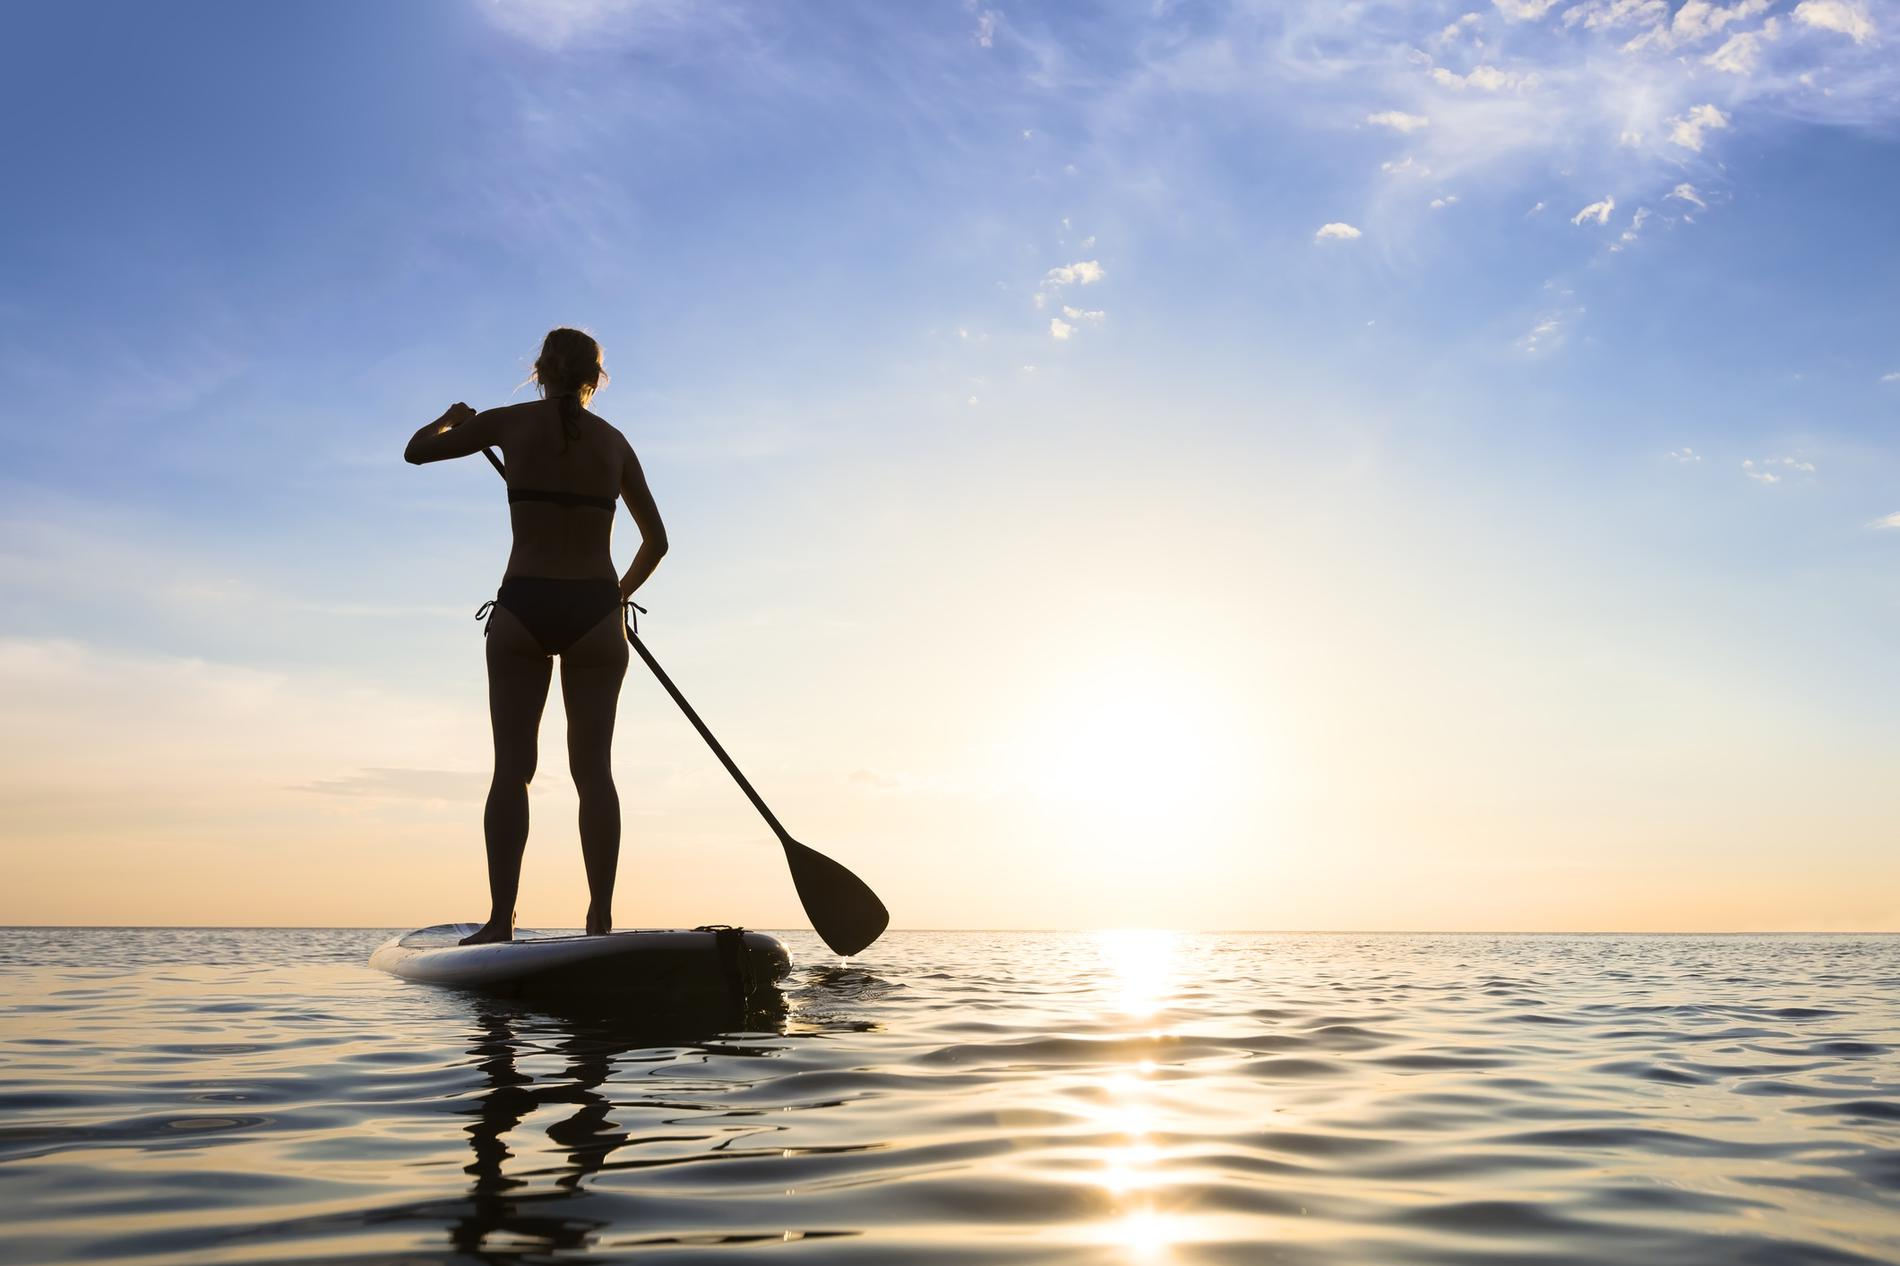 a picture of stand up paddle boarding tv